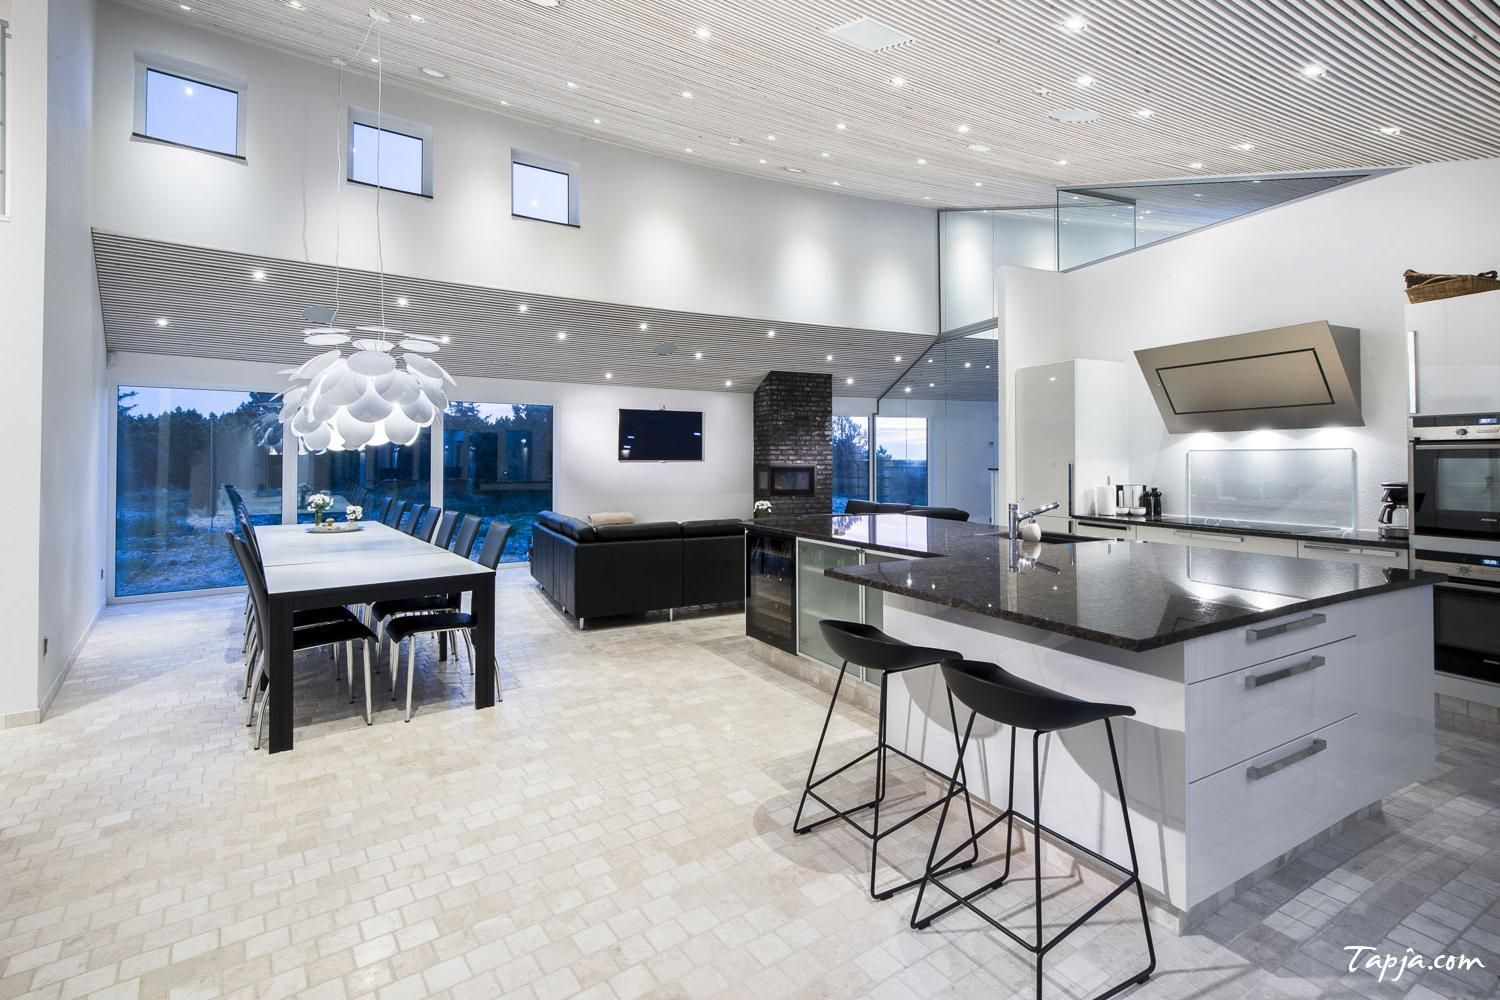 Luxury Kitchen Design With Amazing Lighting Idea In Ceiling